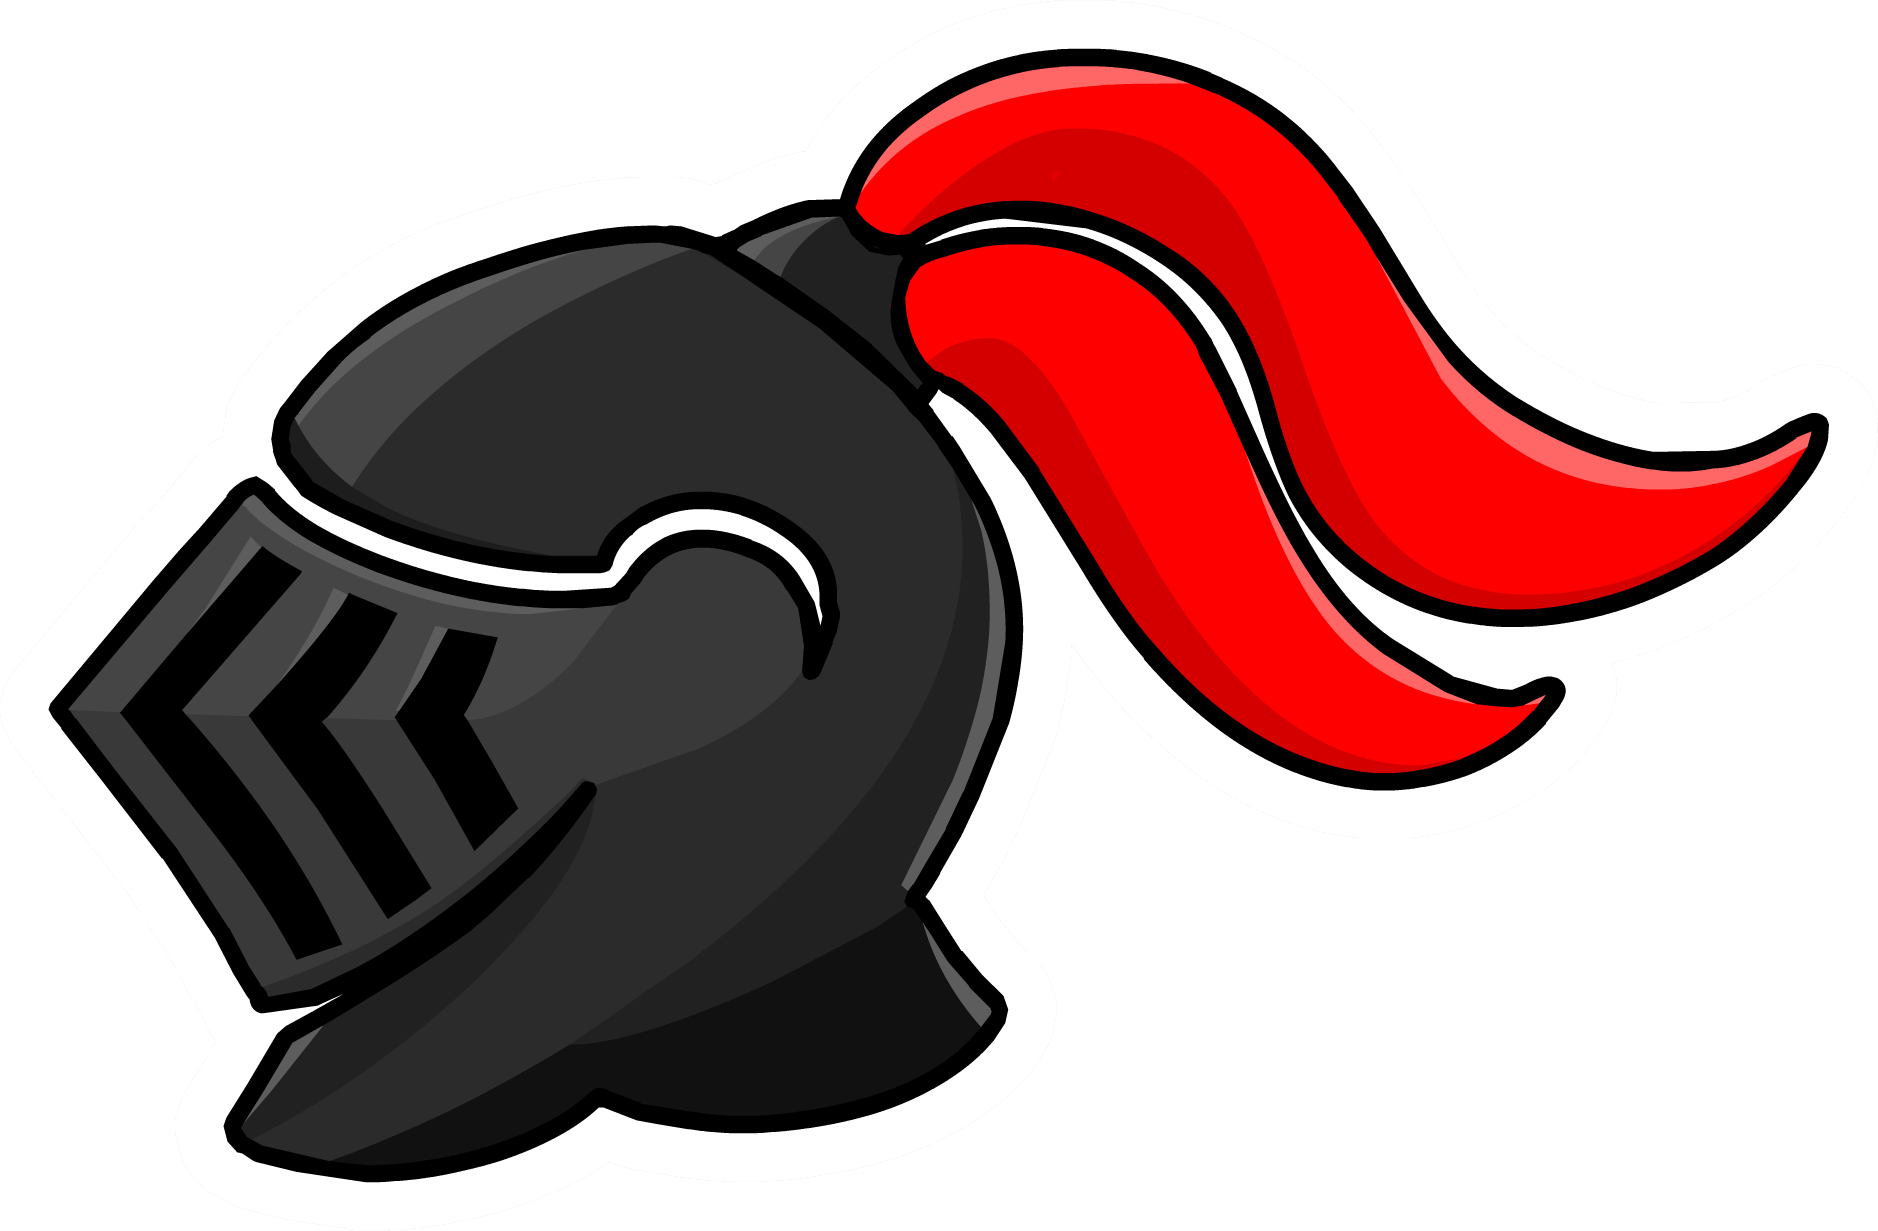 Knight clipart helm Pin Club by Pin Wikia